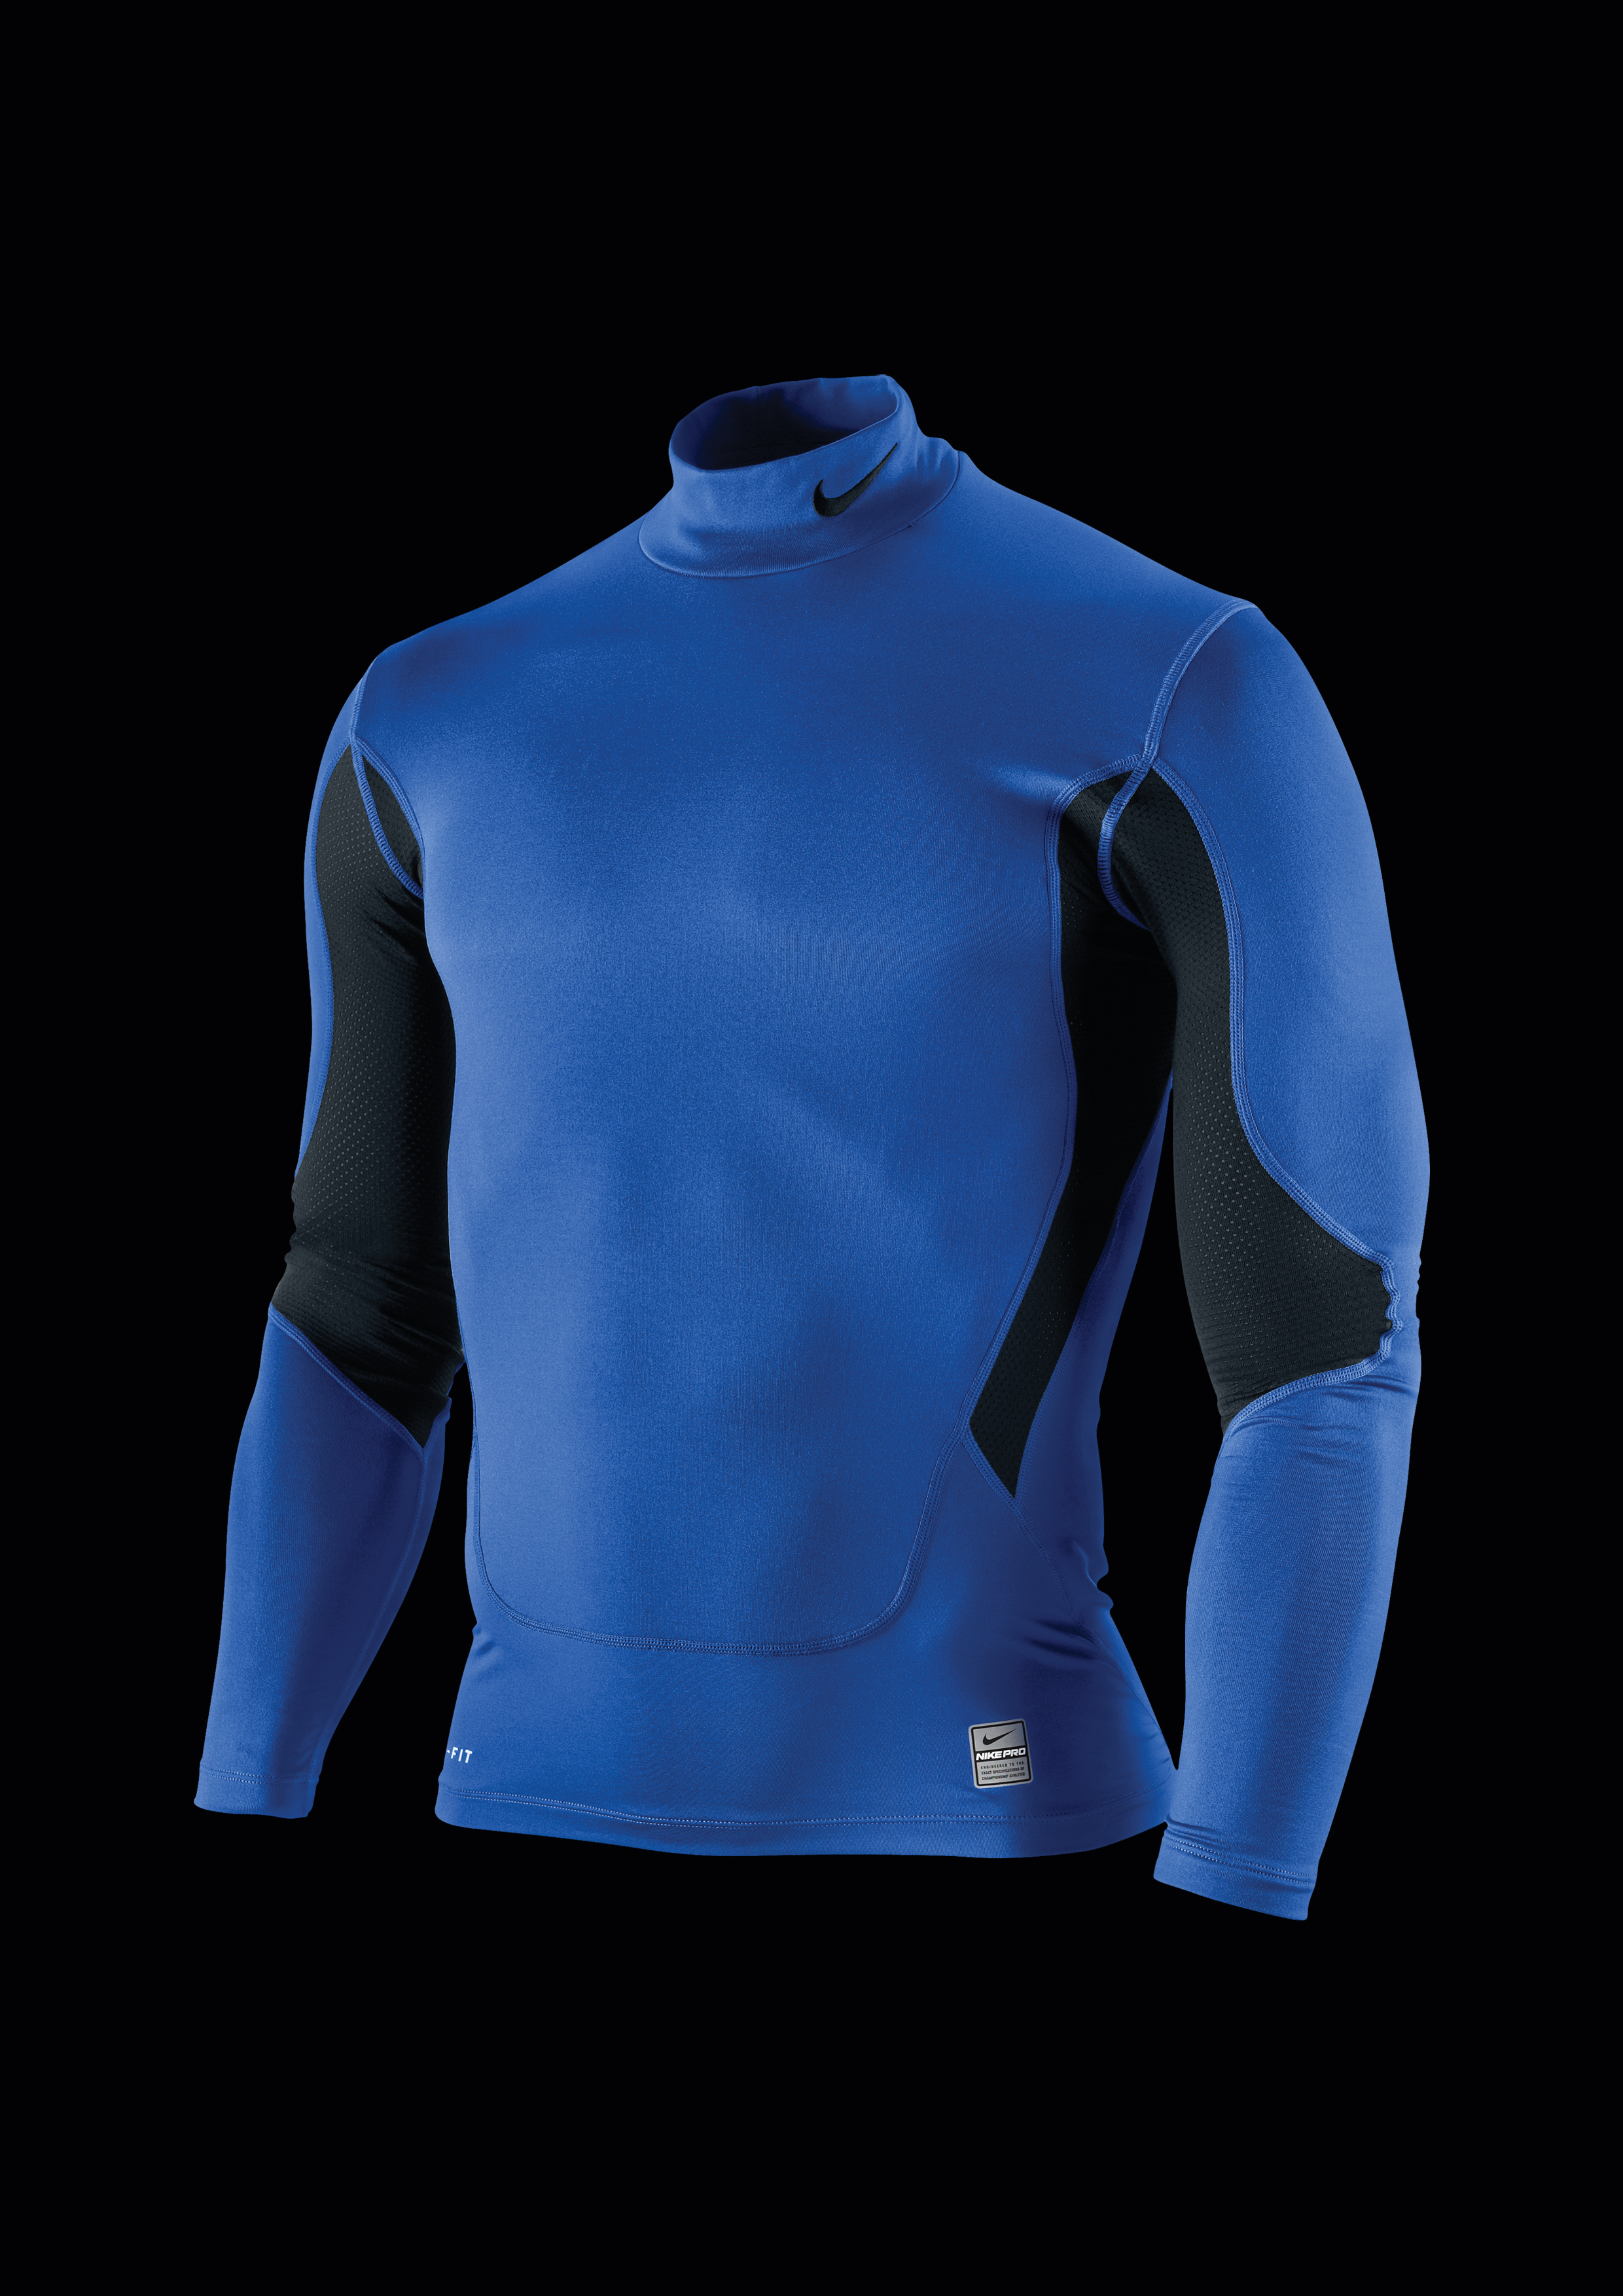 e3ea80d6f7000 nike launches pro combat hyperwarm flex base layer technology